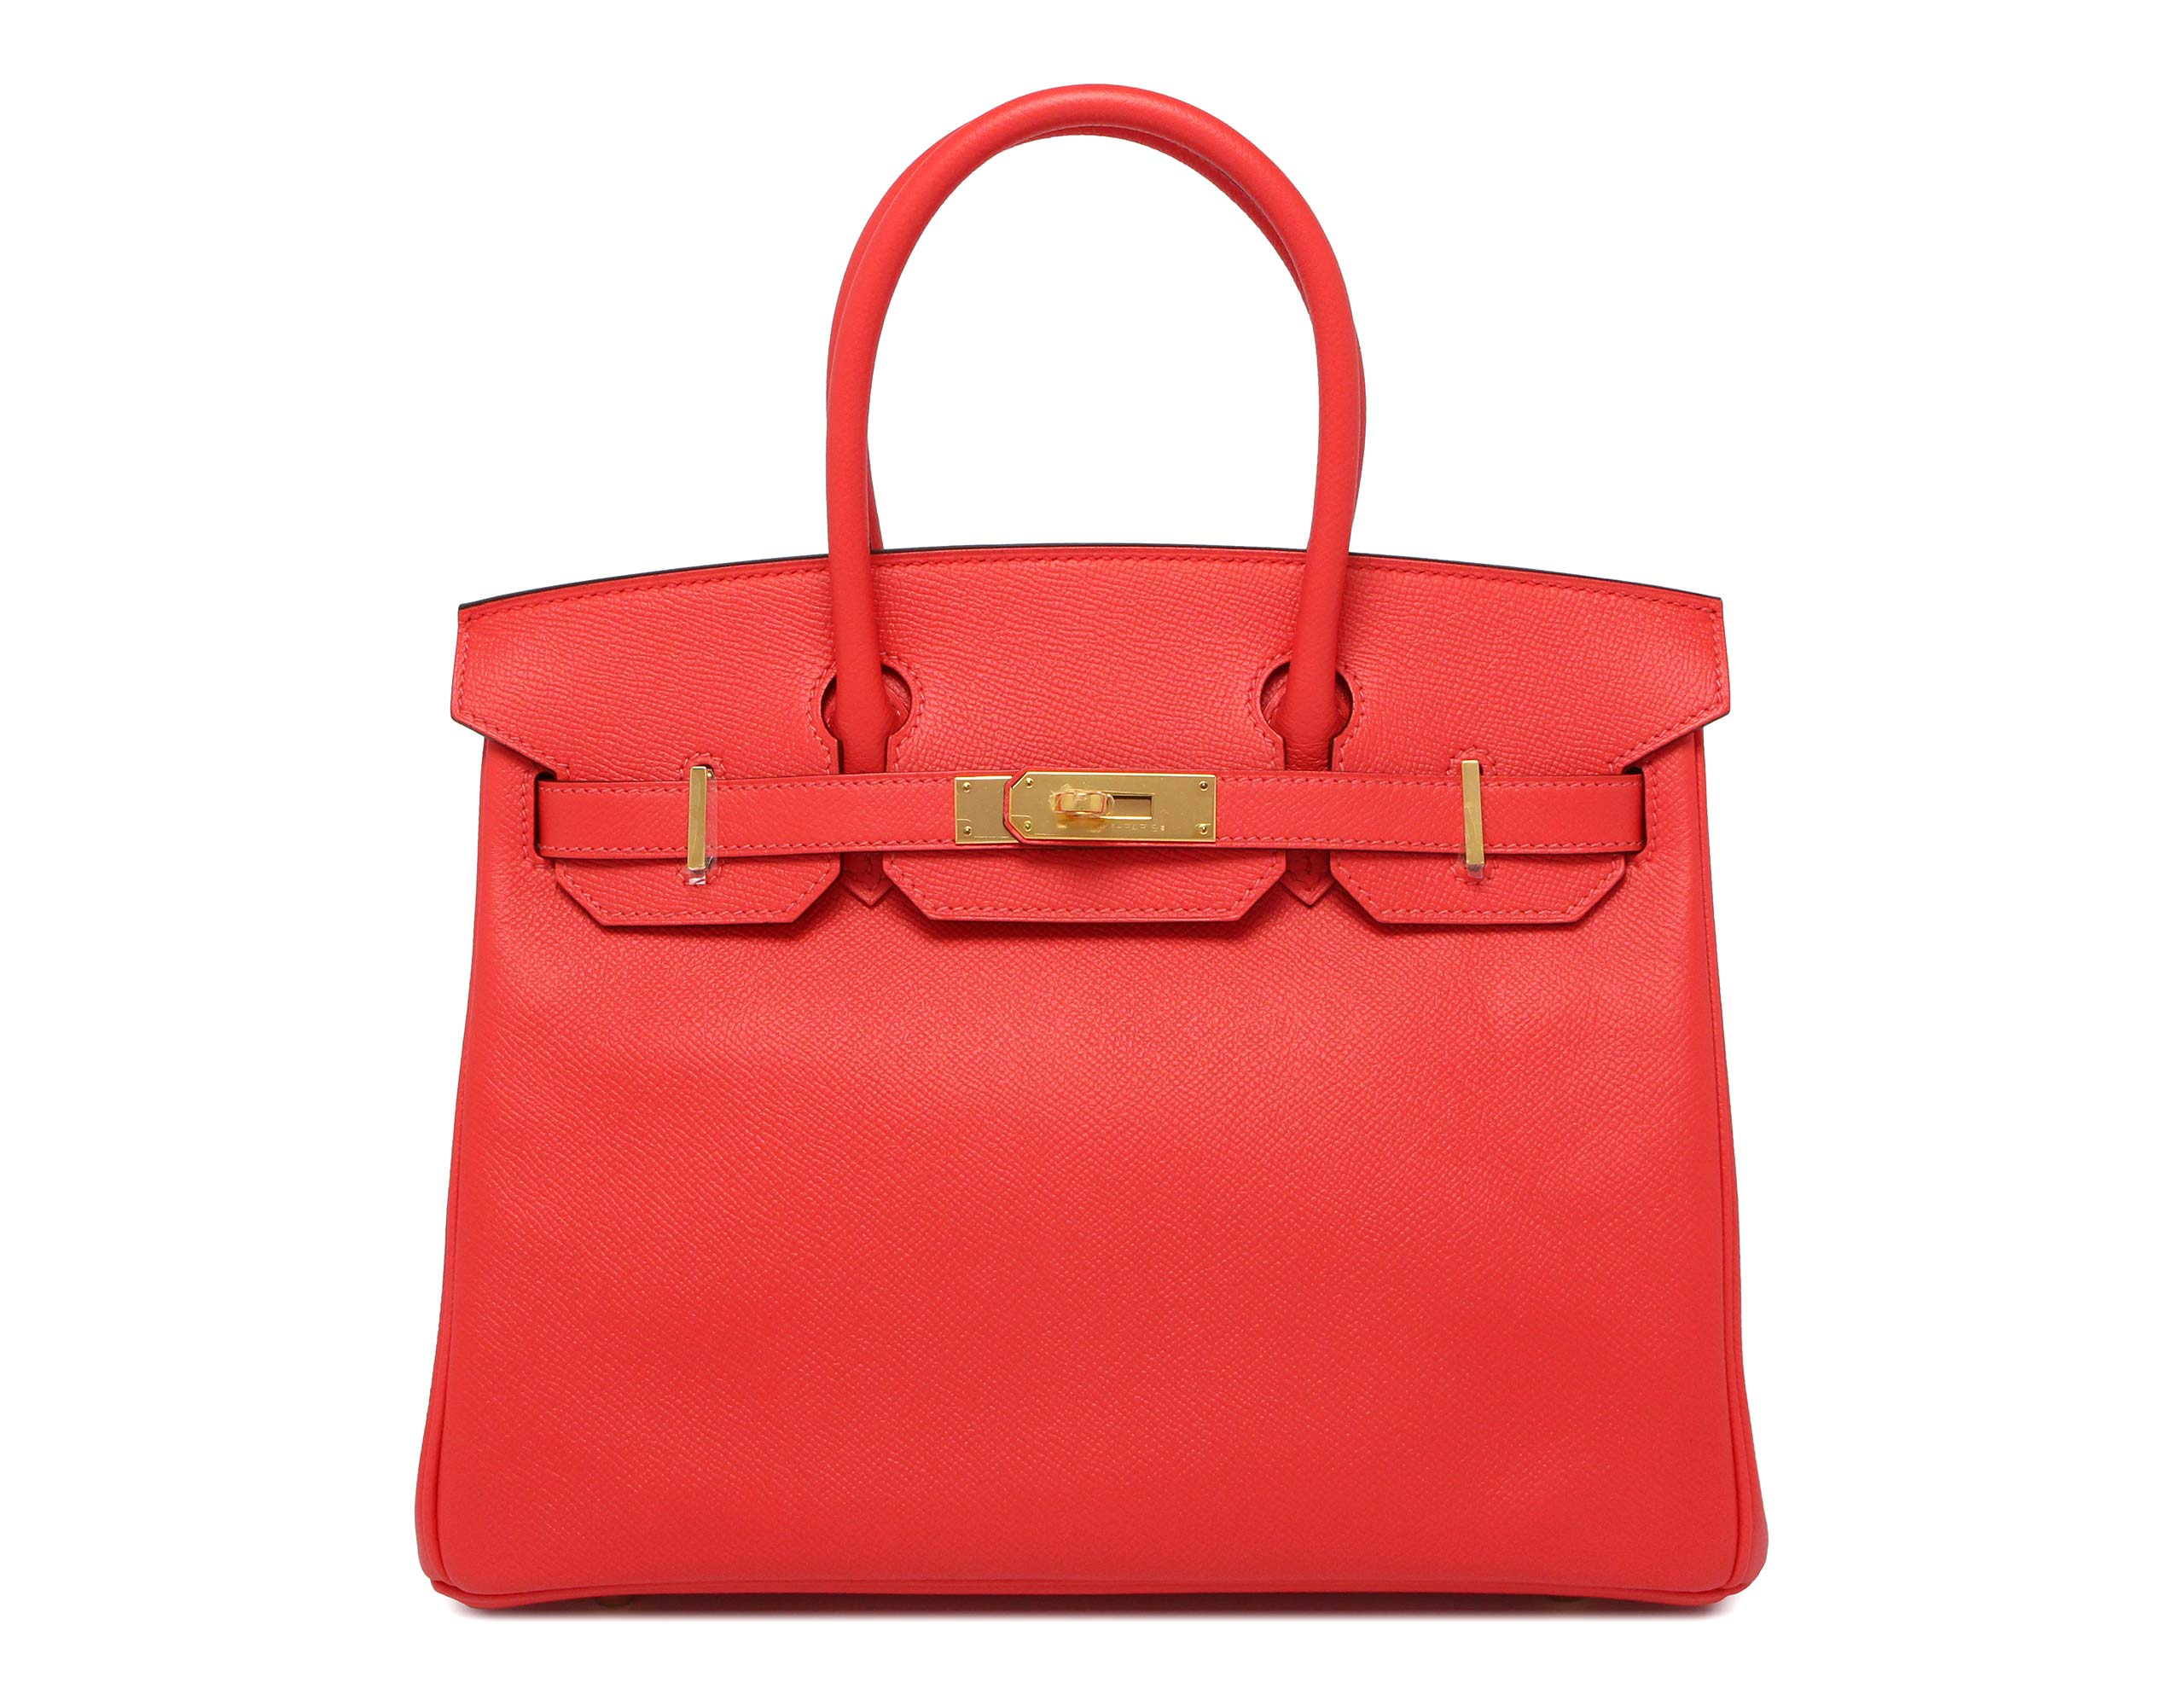 Hermes Birkin Bags For Sale  10dd3579817a7